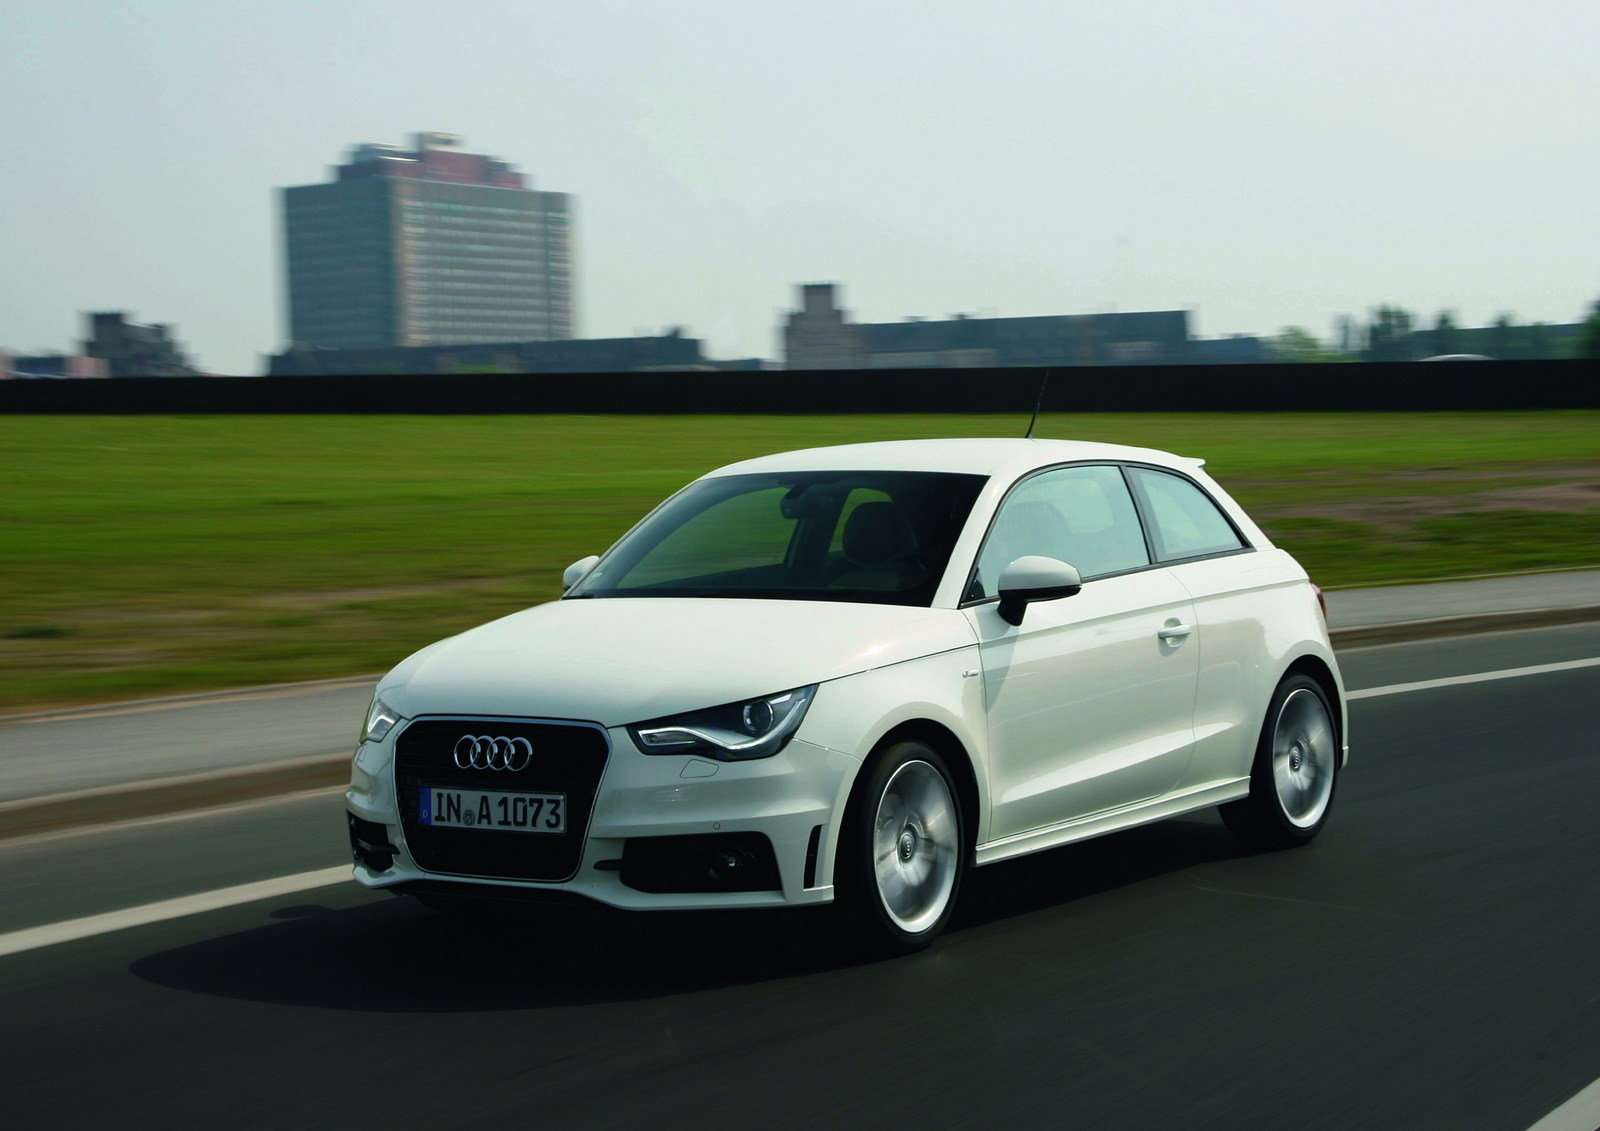 2013 Audi A1 Review - Top Speed